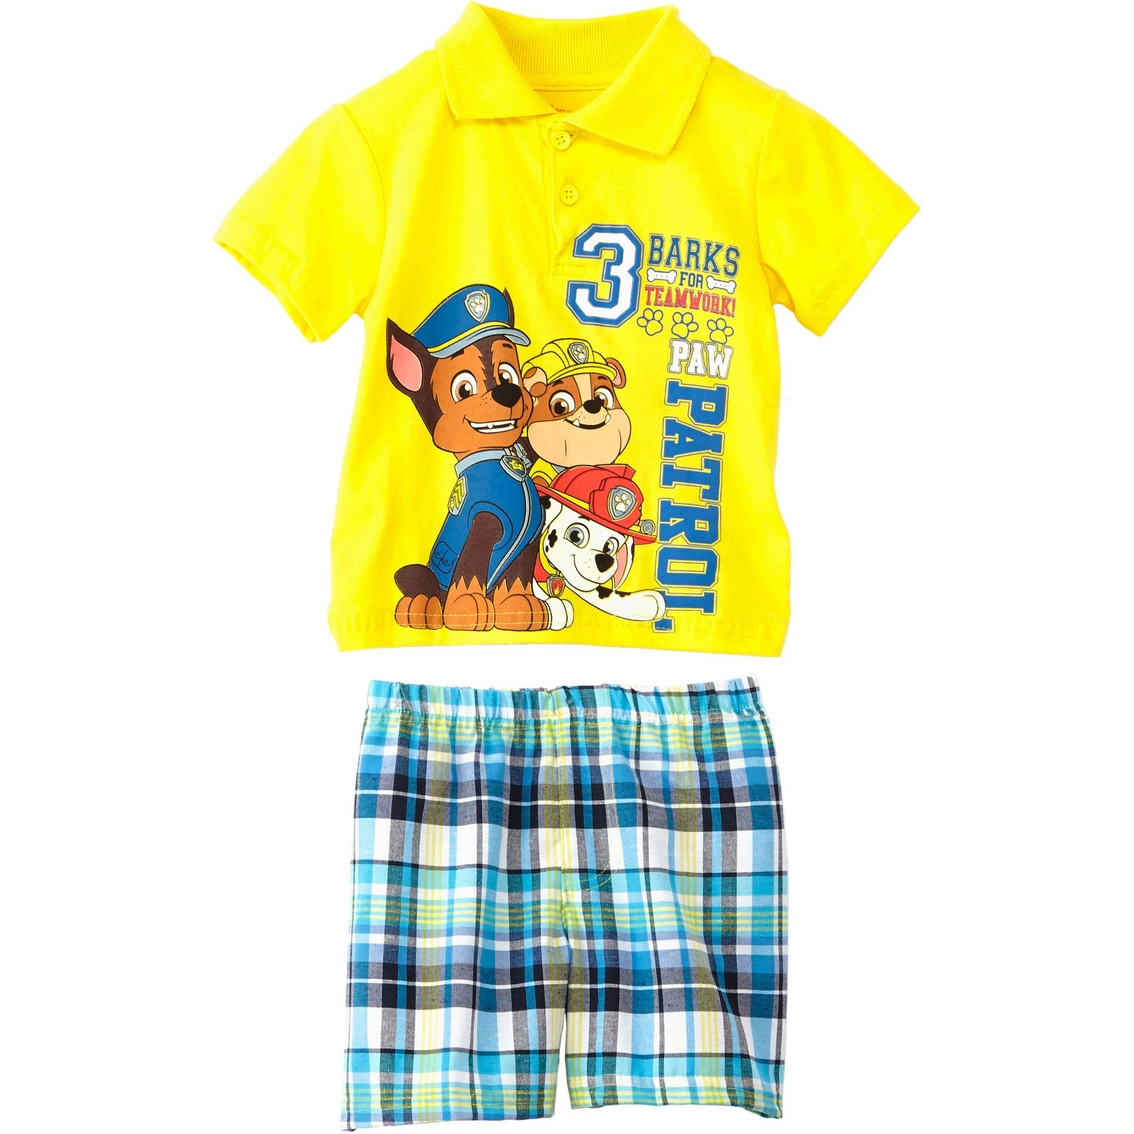 0d68b5d69541 Nickelodeon Infant Boys 2 Pc. Paw Patrol Polo Shirt And Shorts Set ...